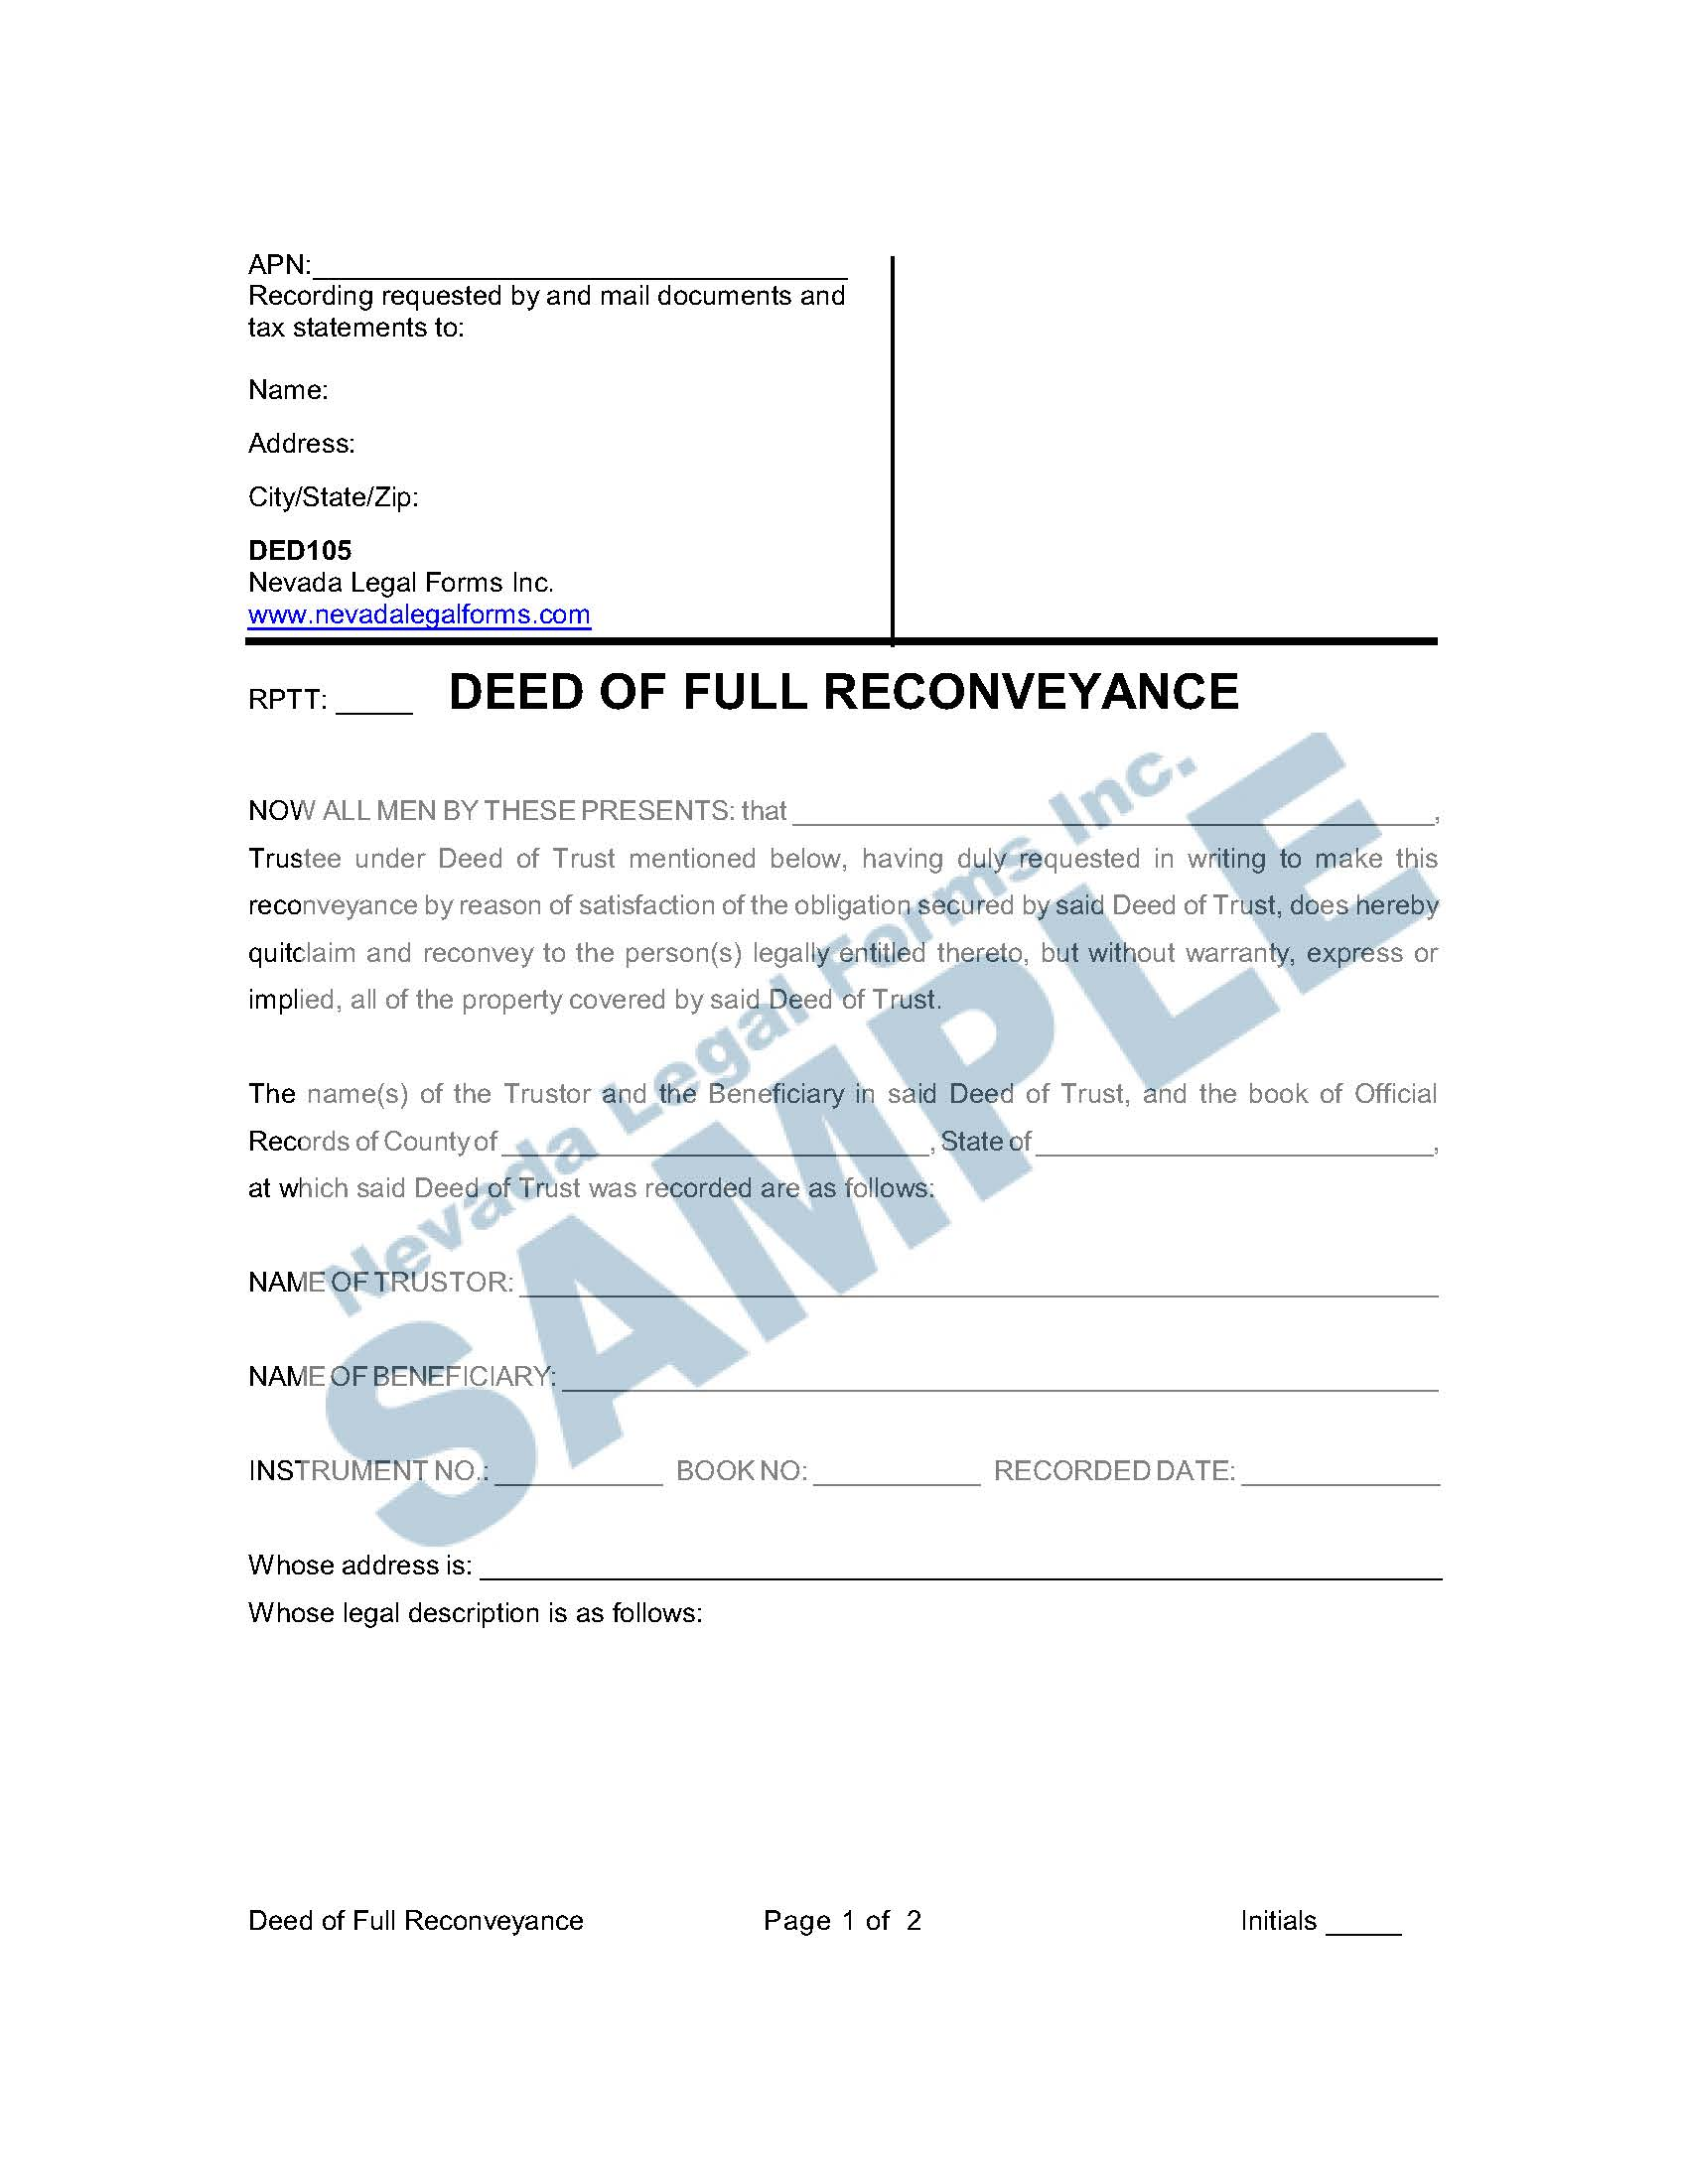 Deed Of Full Reconveyance